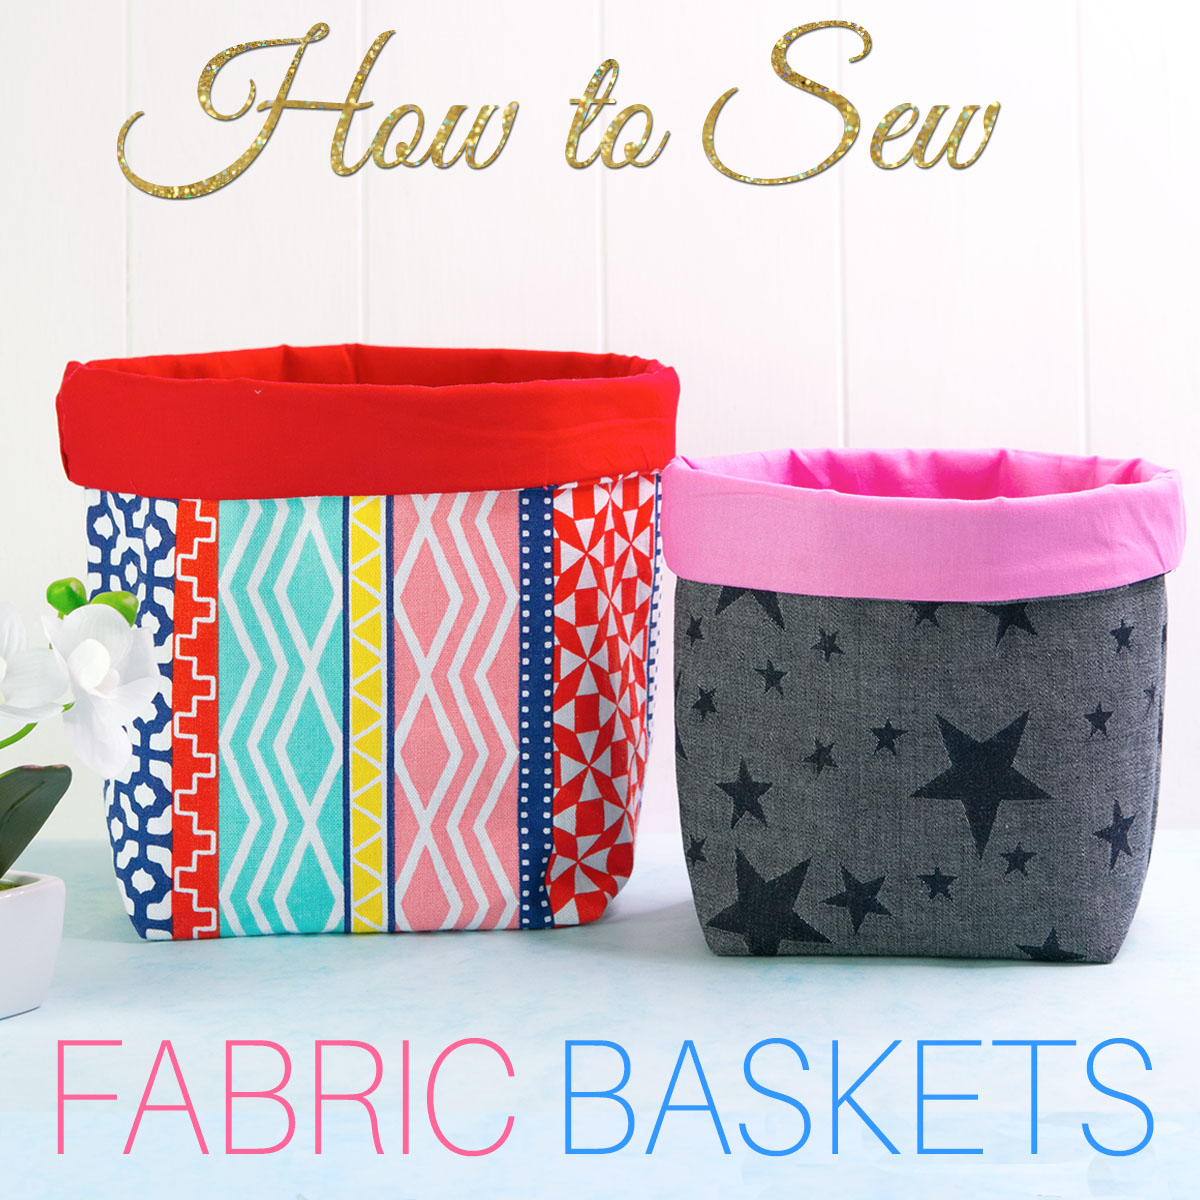 fabric basket tutorial  sc 1 st  TREASURIE - My Childhood Treasures & Fabric basket Tutorial: How to make fabric baskets in 5 sizes |TREASURIE